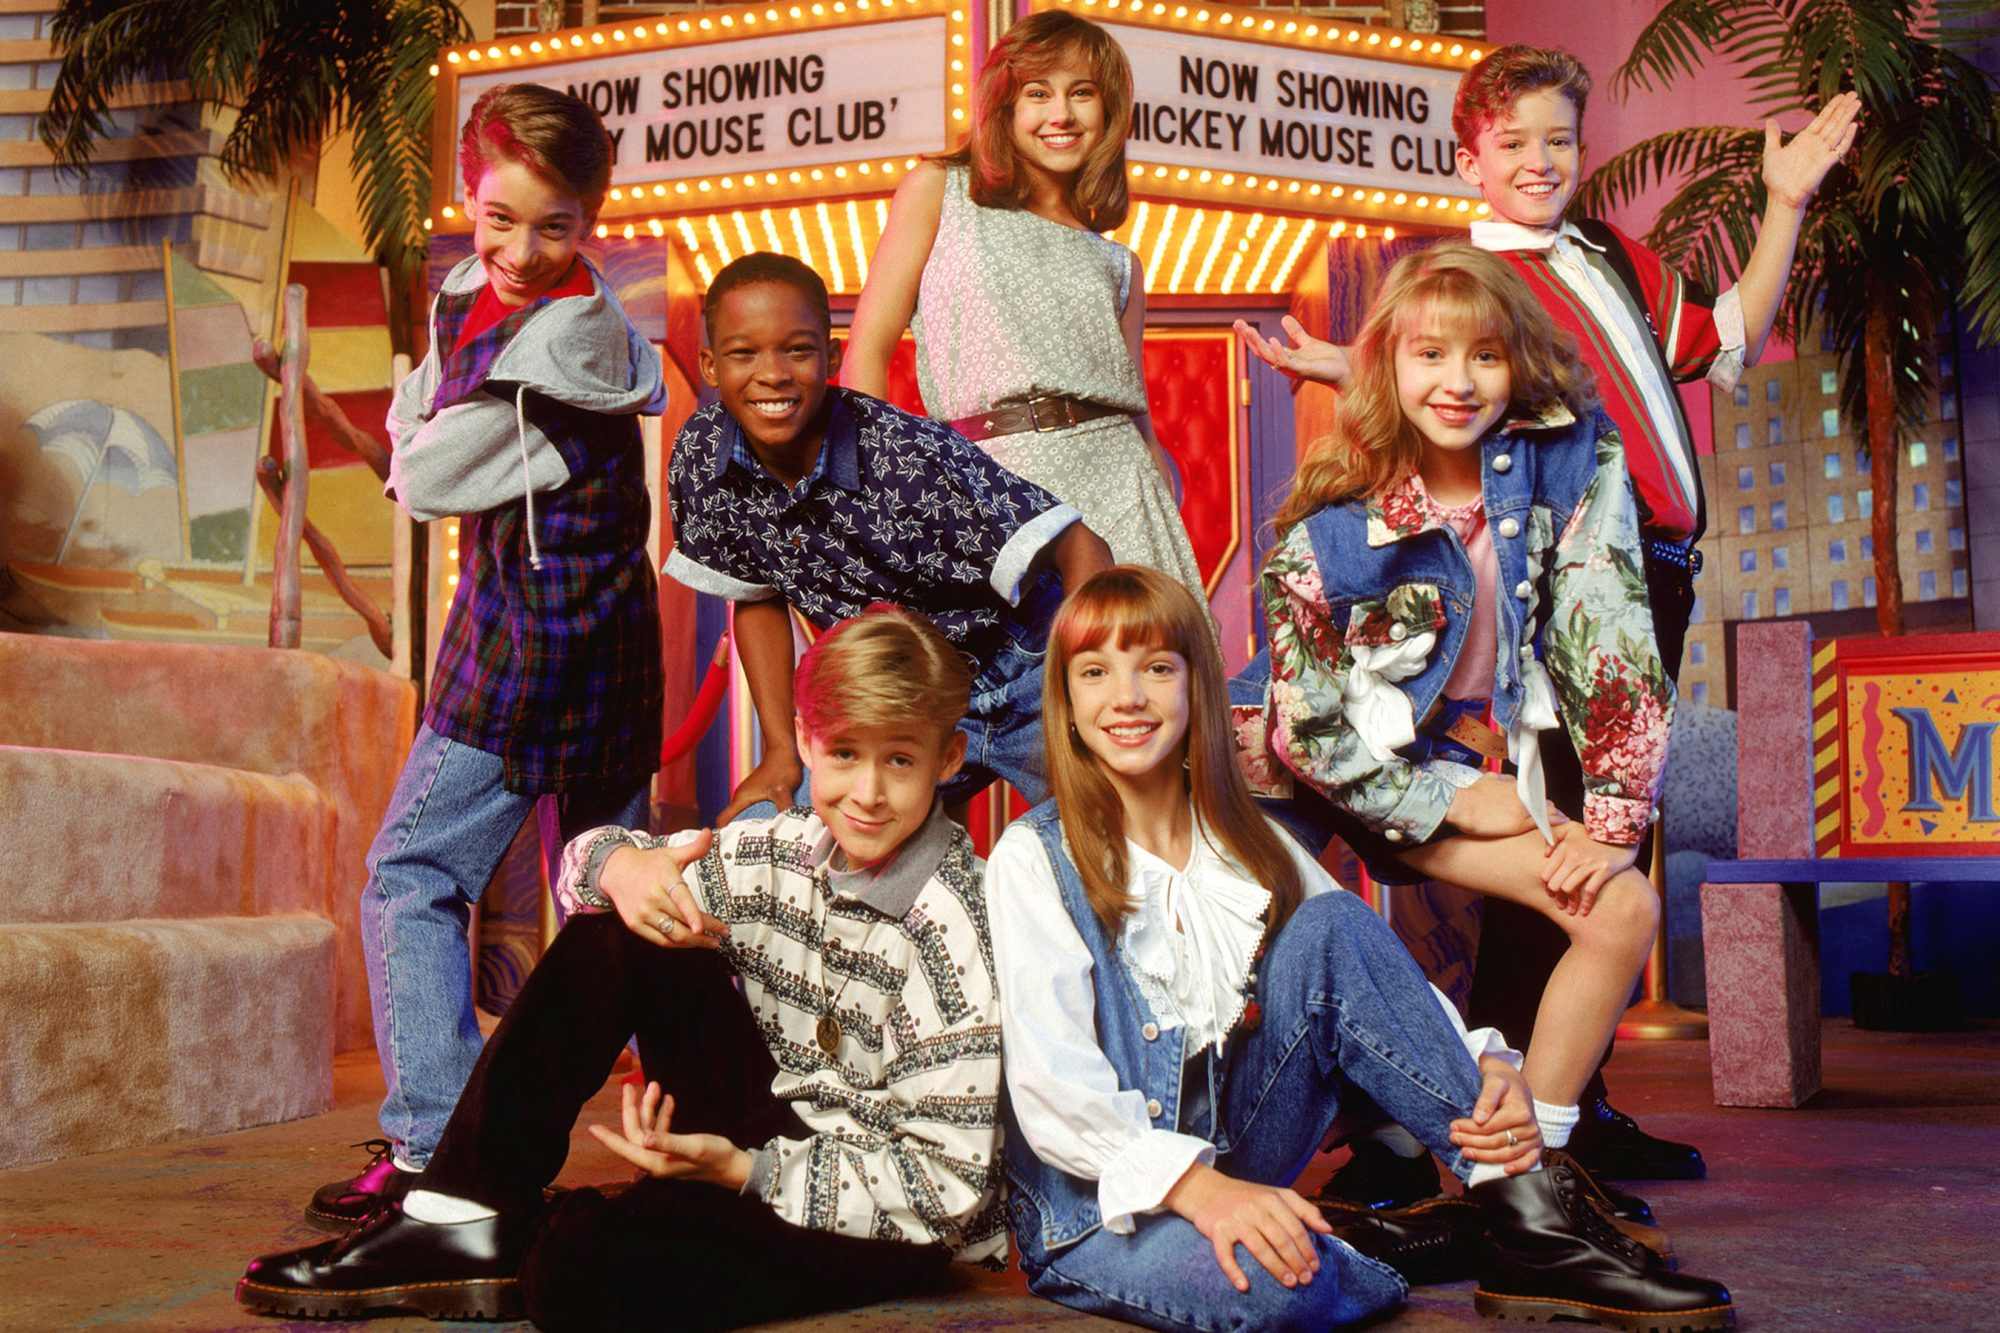 MICKEY MOUSE CLUB (aka MMC), (clockwise from upper center): Nikki DeLoach, Justin Timberlake, Christ